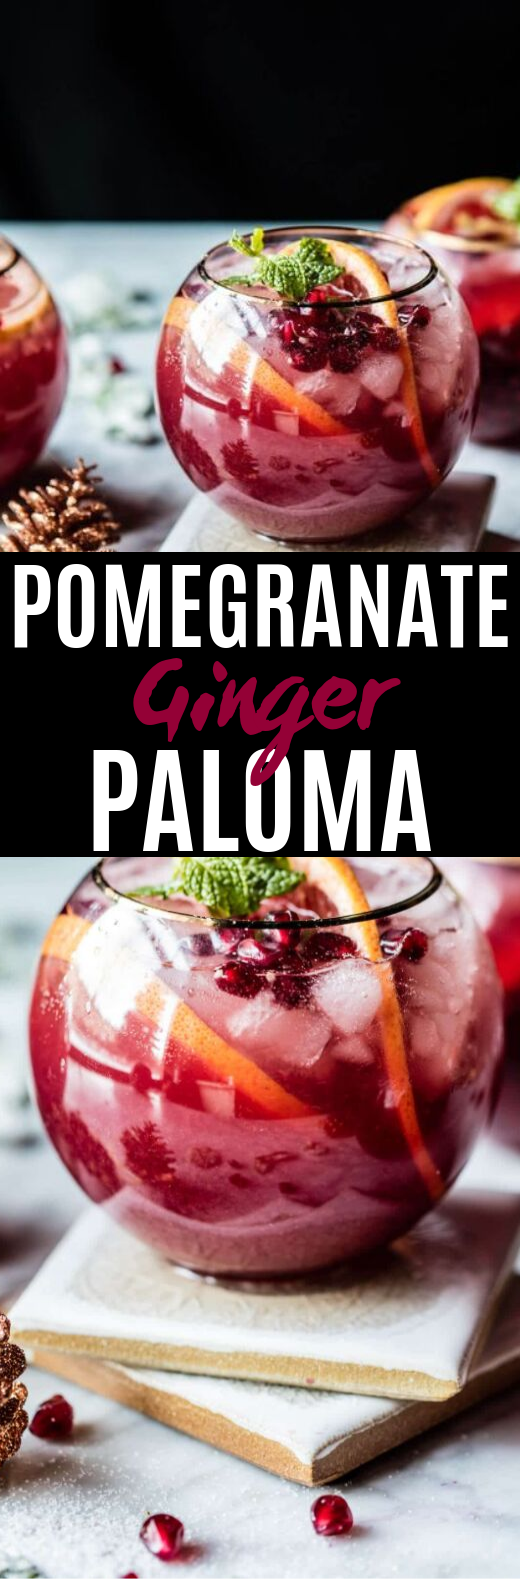 Pomegranate Ginger Paloma #drinks #cocktails